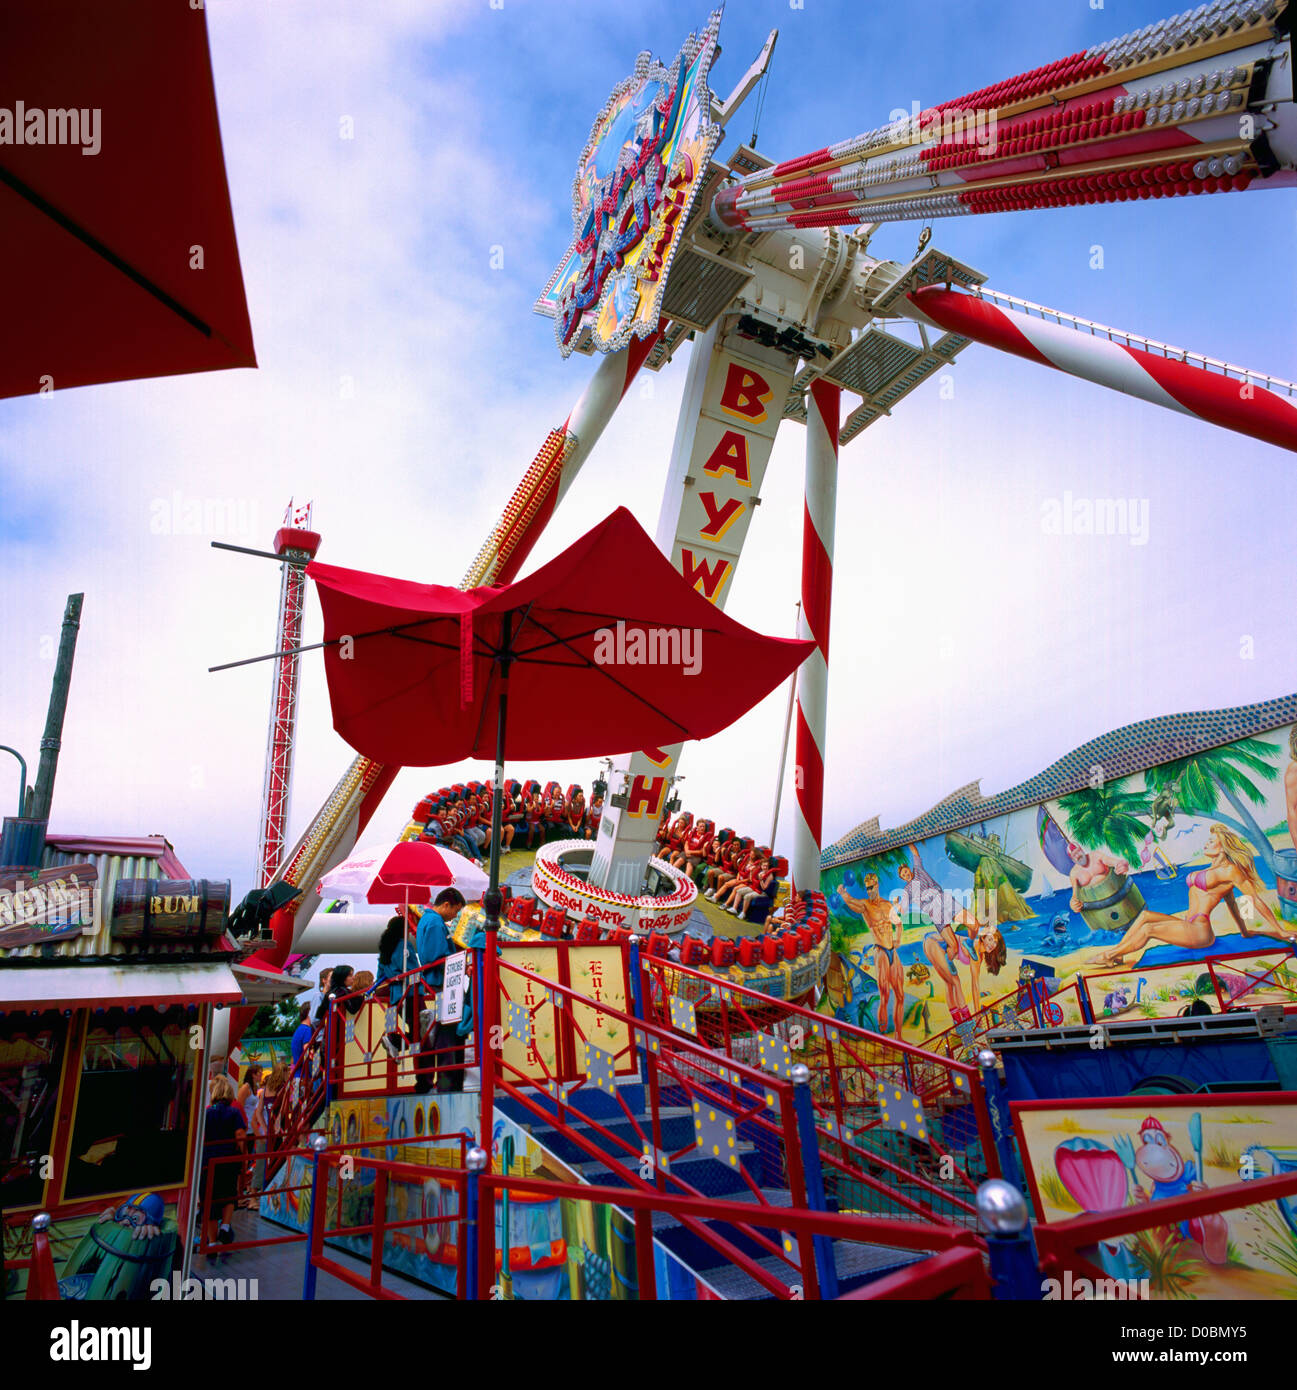 'Crazy Beach Party' Amusement Park Ride At Playland